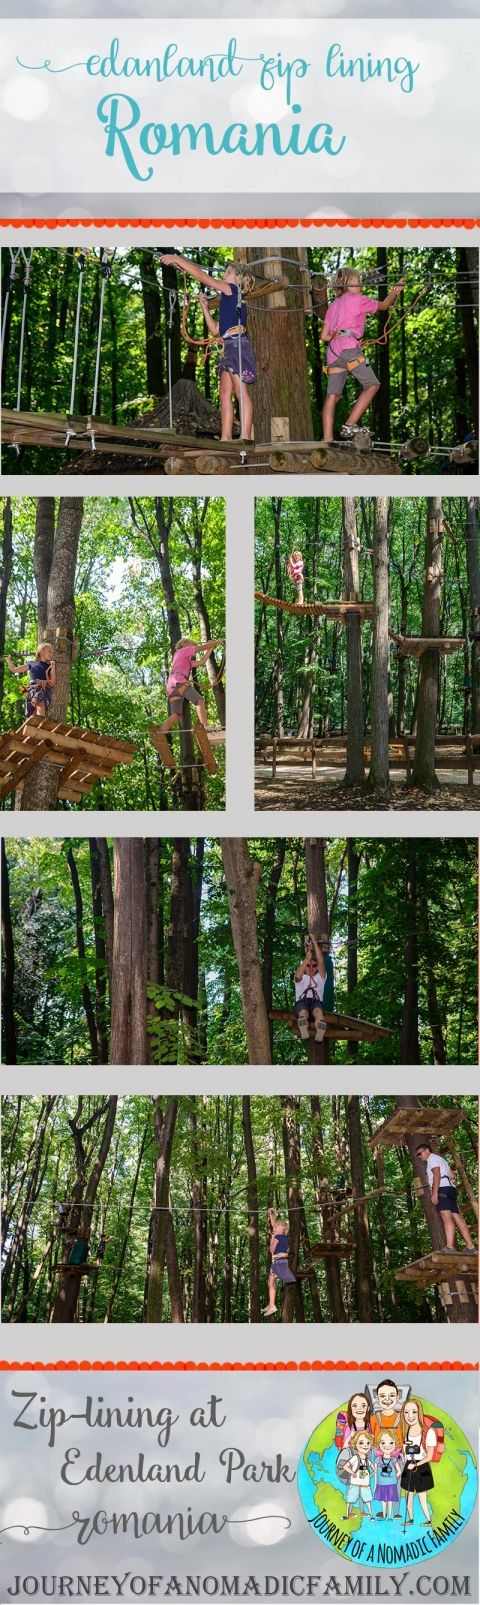 what to expect from zip-lining at Edenland in Romania.